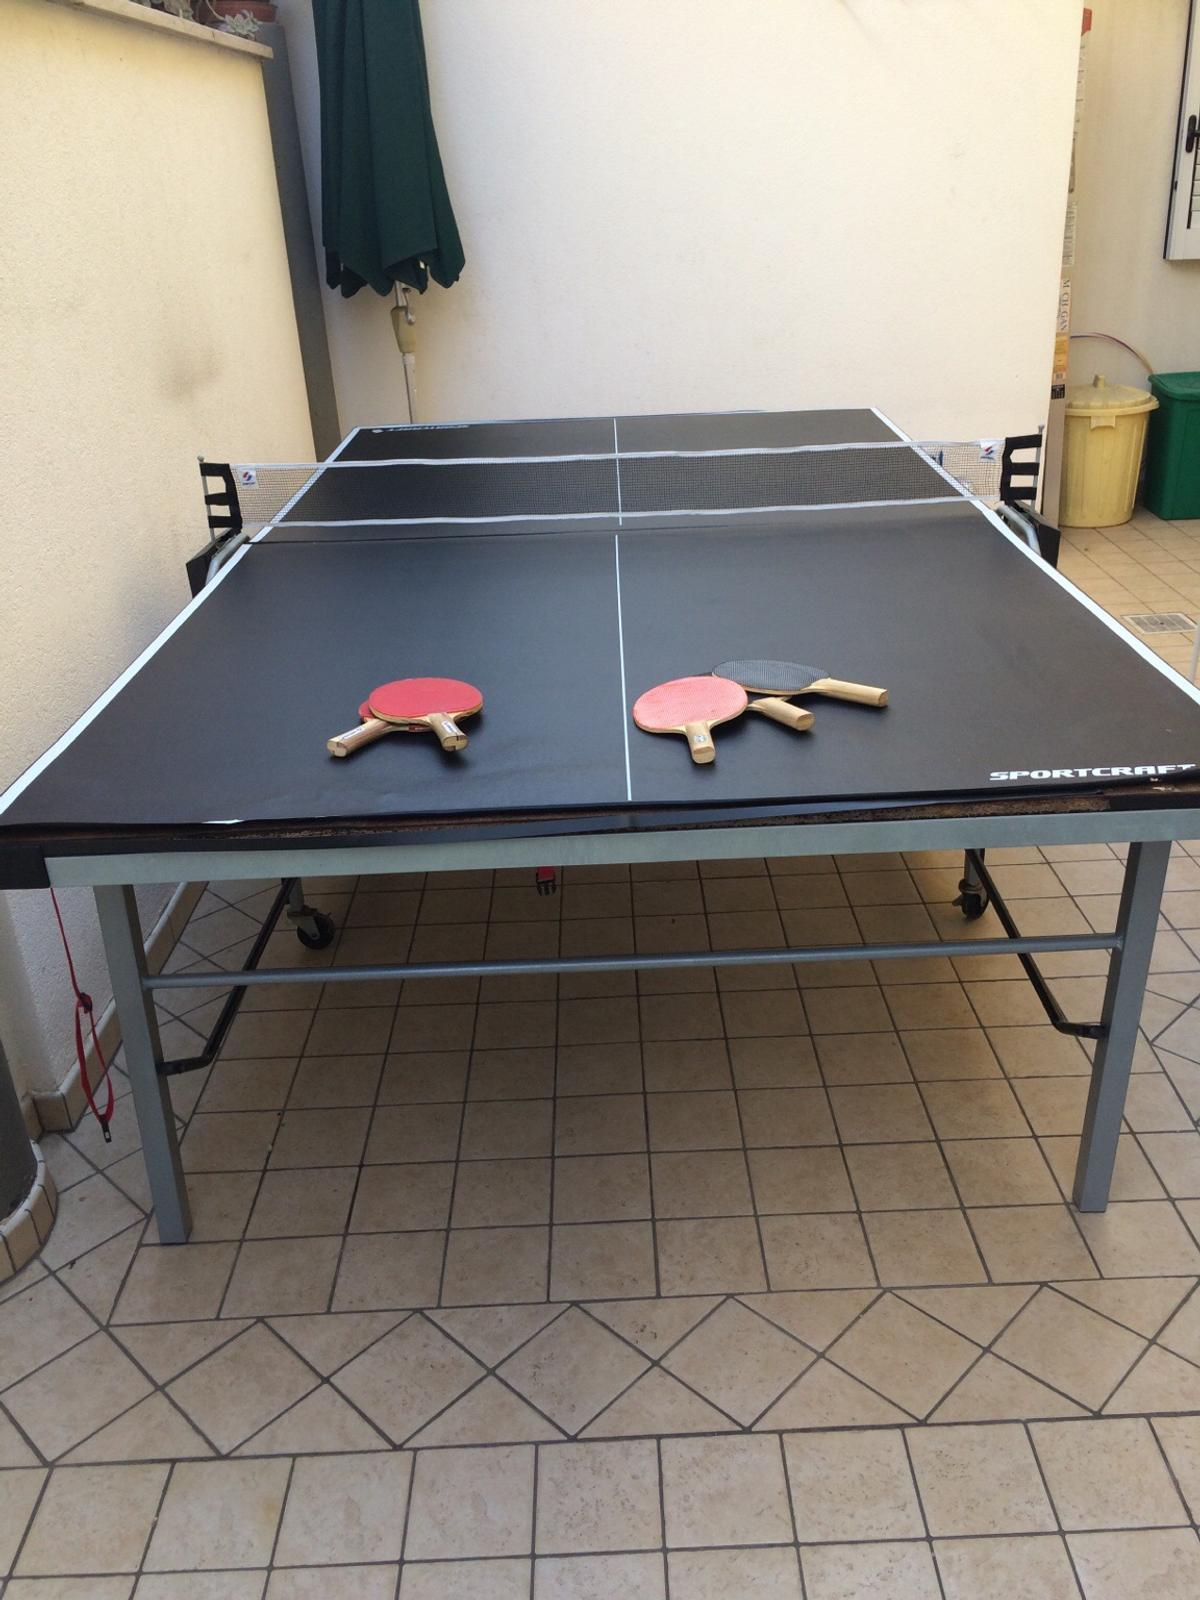 Tavolo Ping Pong In 73013 Galatina For 6000 For Sale Shpock